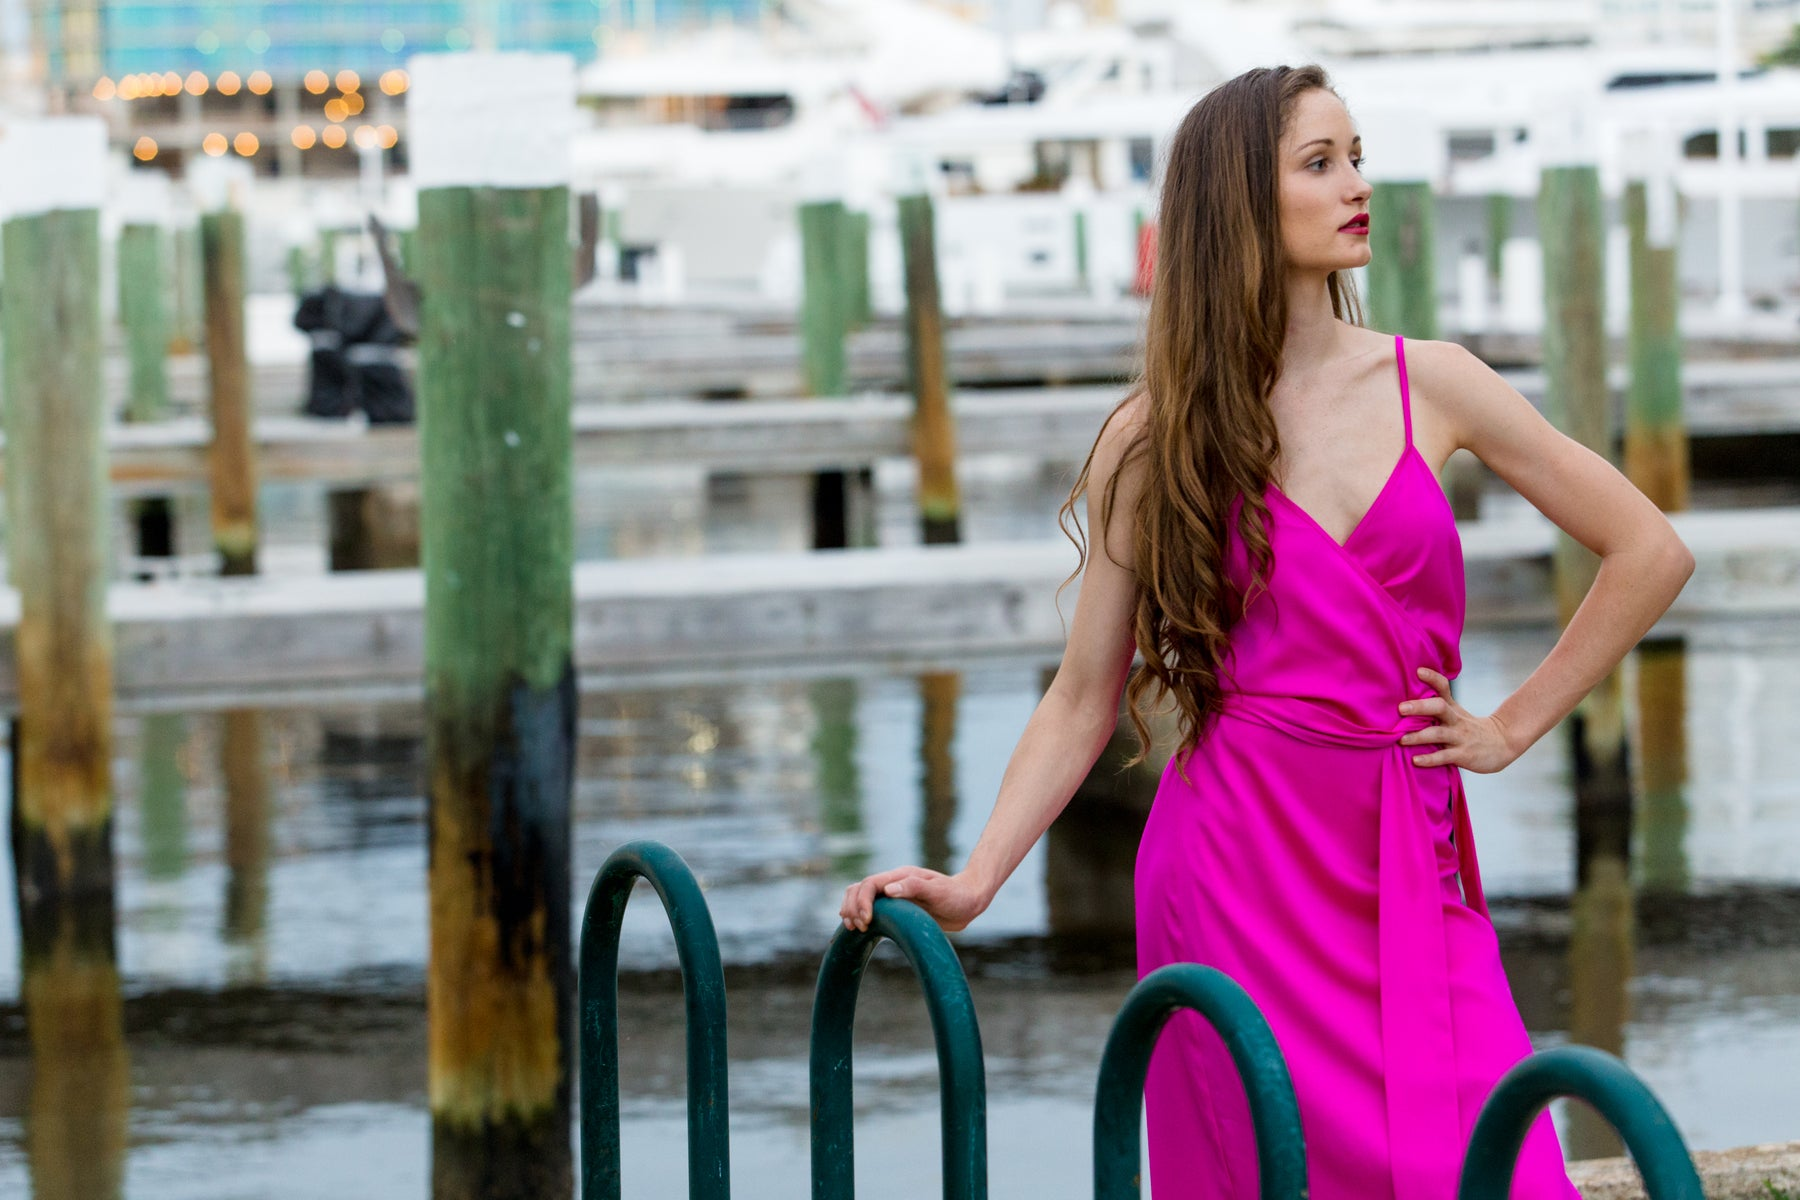 Palm Beach Peony pink dress.  Strappy wrap around dress.  Pink silk dress perfect for day or night occassion. Light weight, easy to care for travel dress.